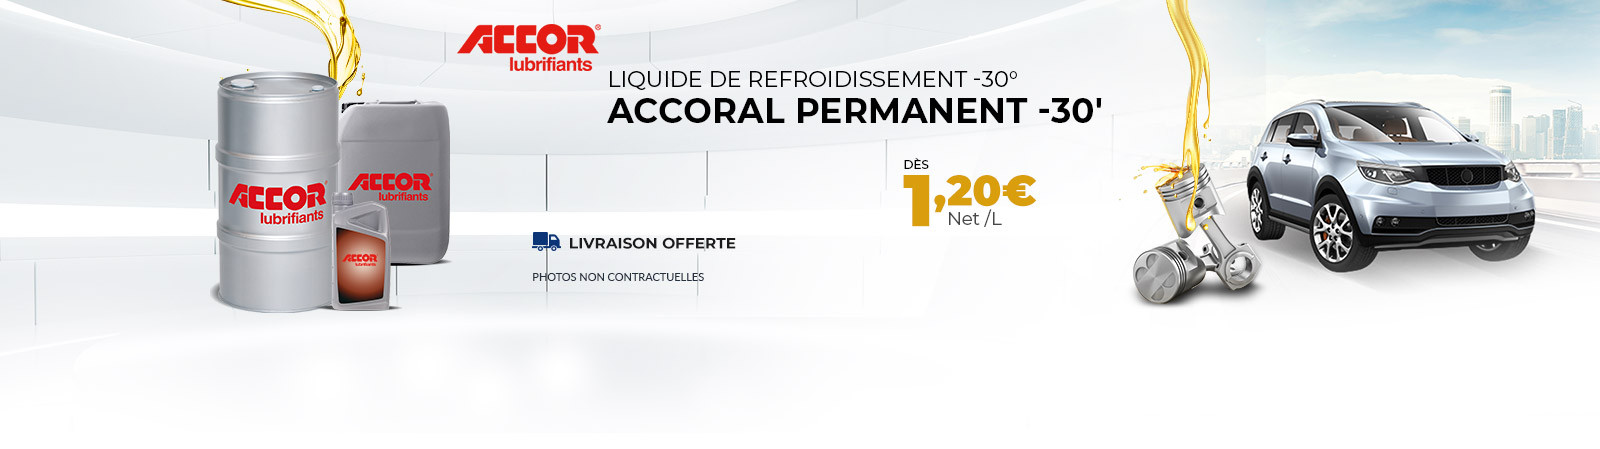 Auto Accor permanent 30